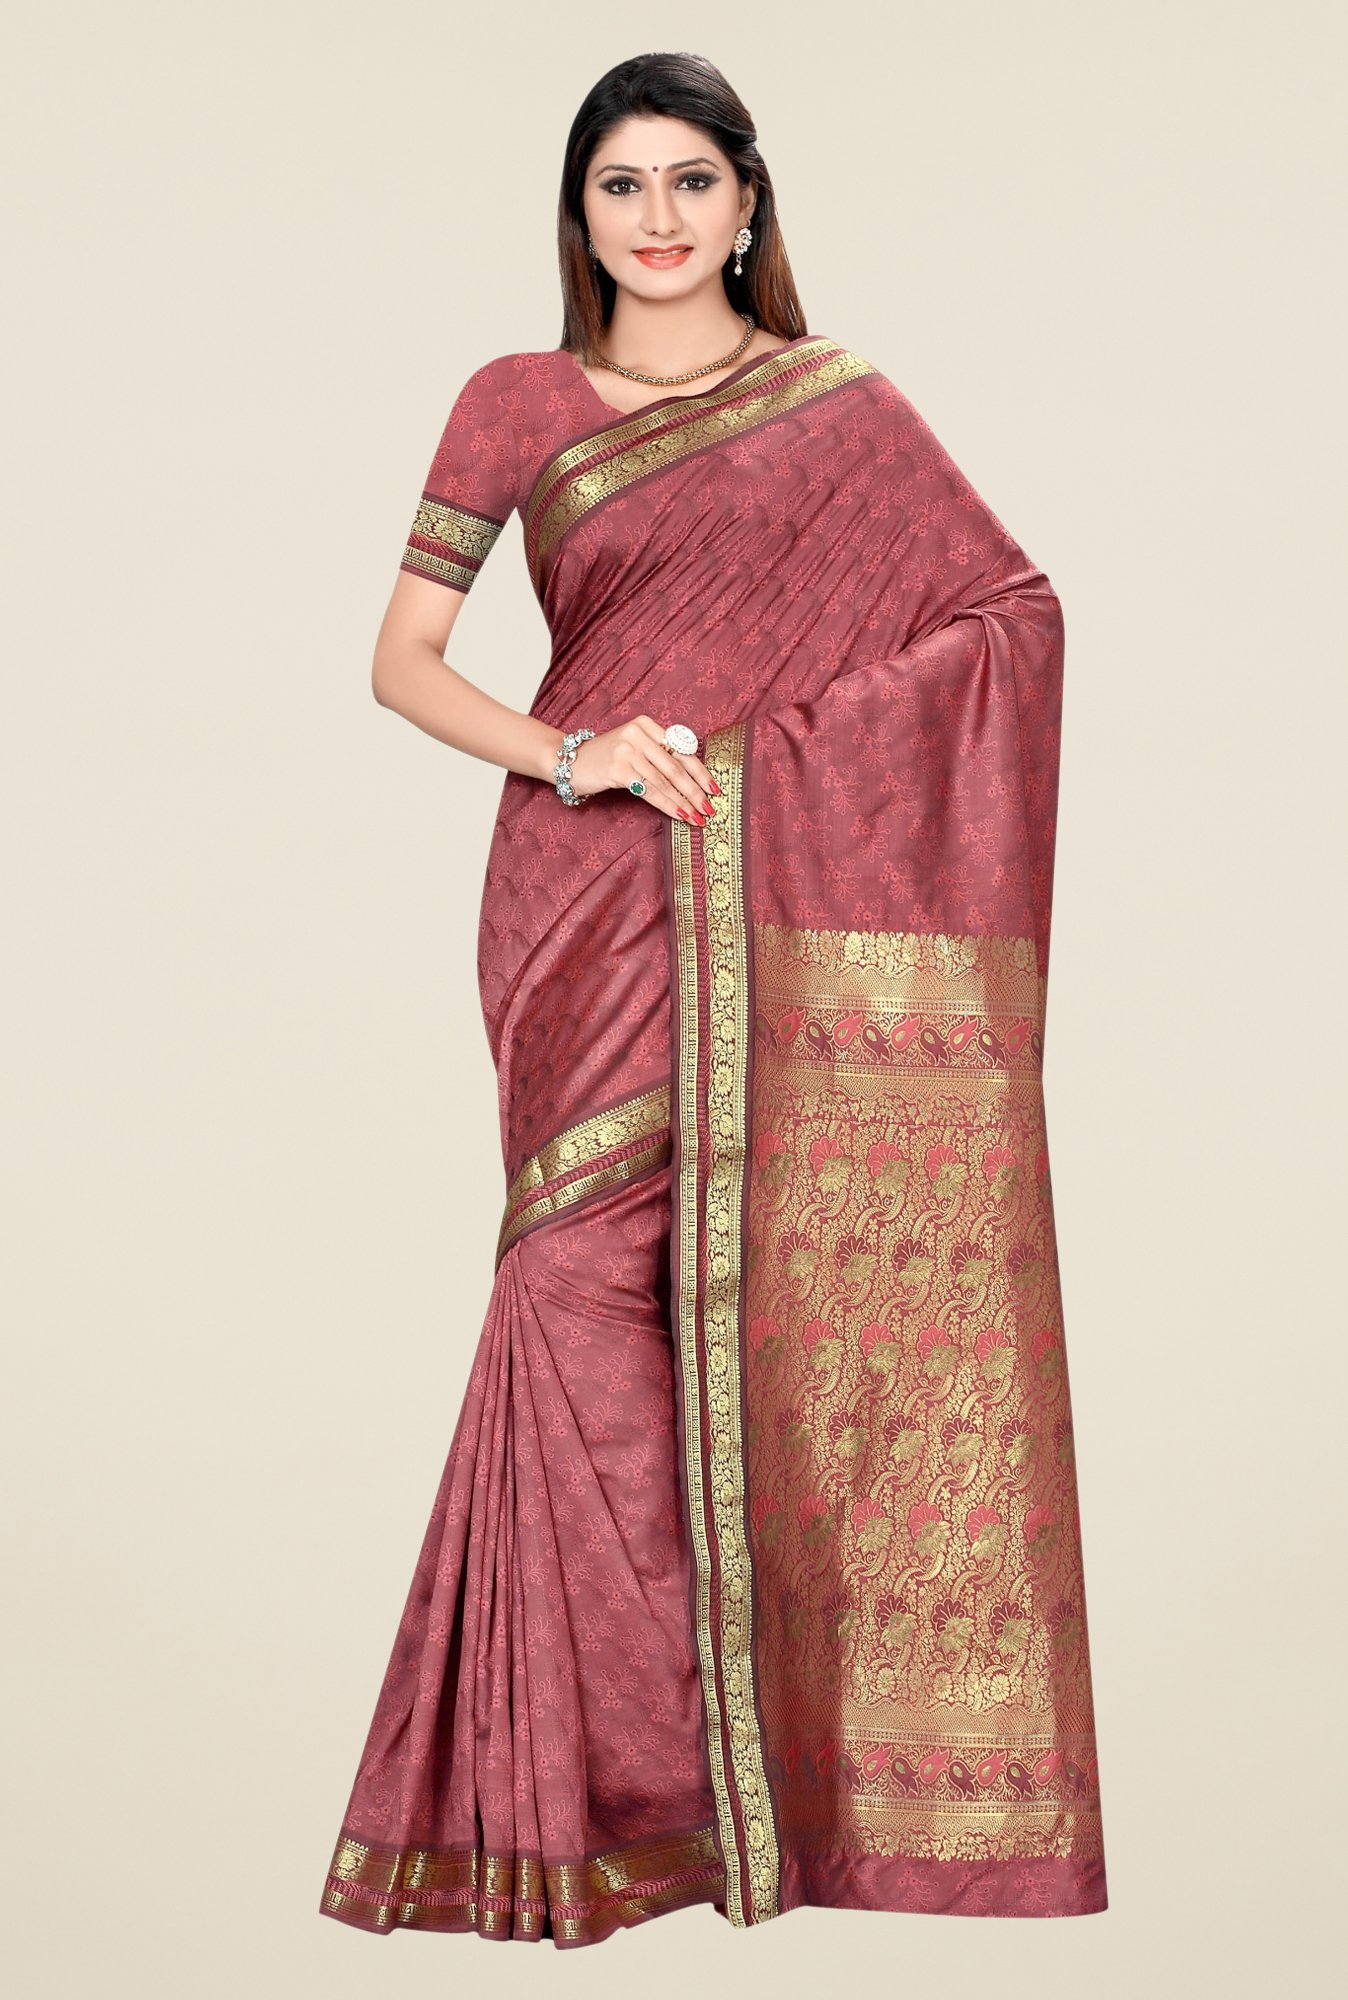 Triveni Rosewood Printed Art Silk Saree